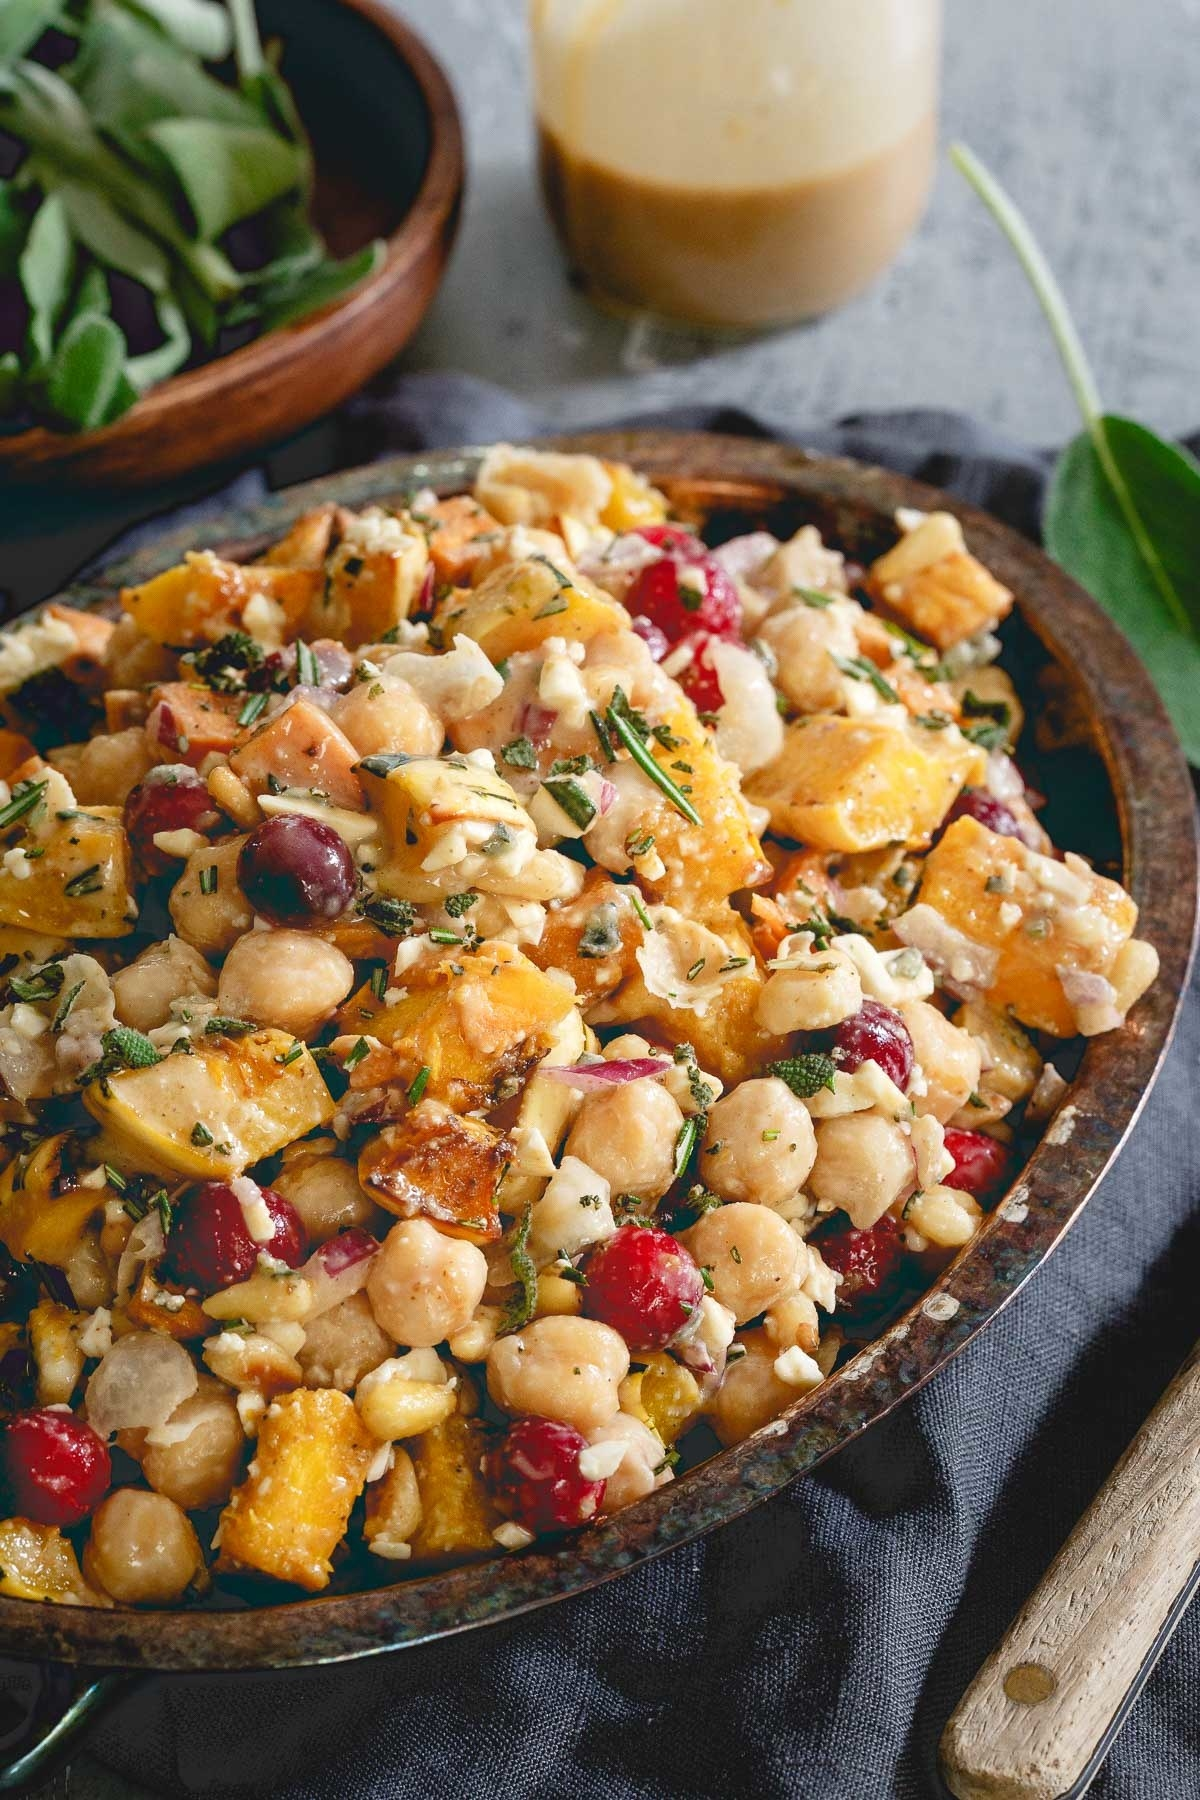 15 Easy Fall Salads You'll Want For Lunch Every Day